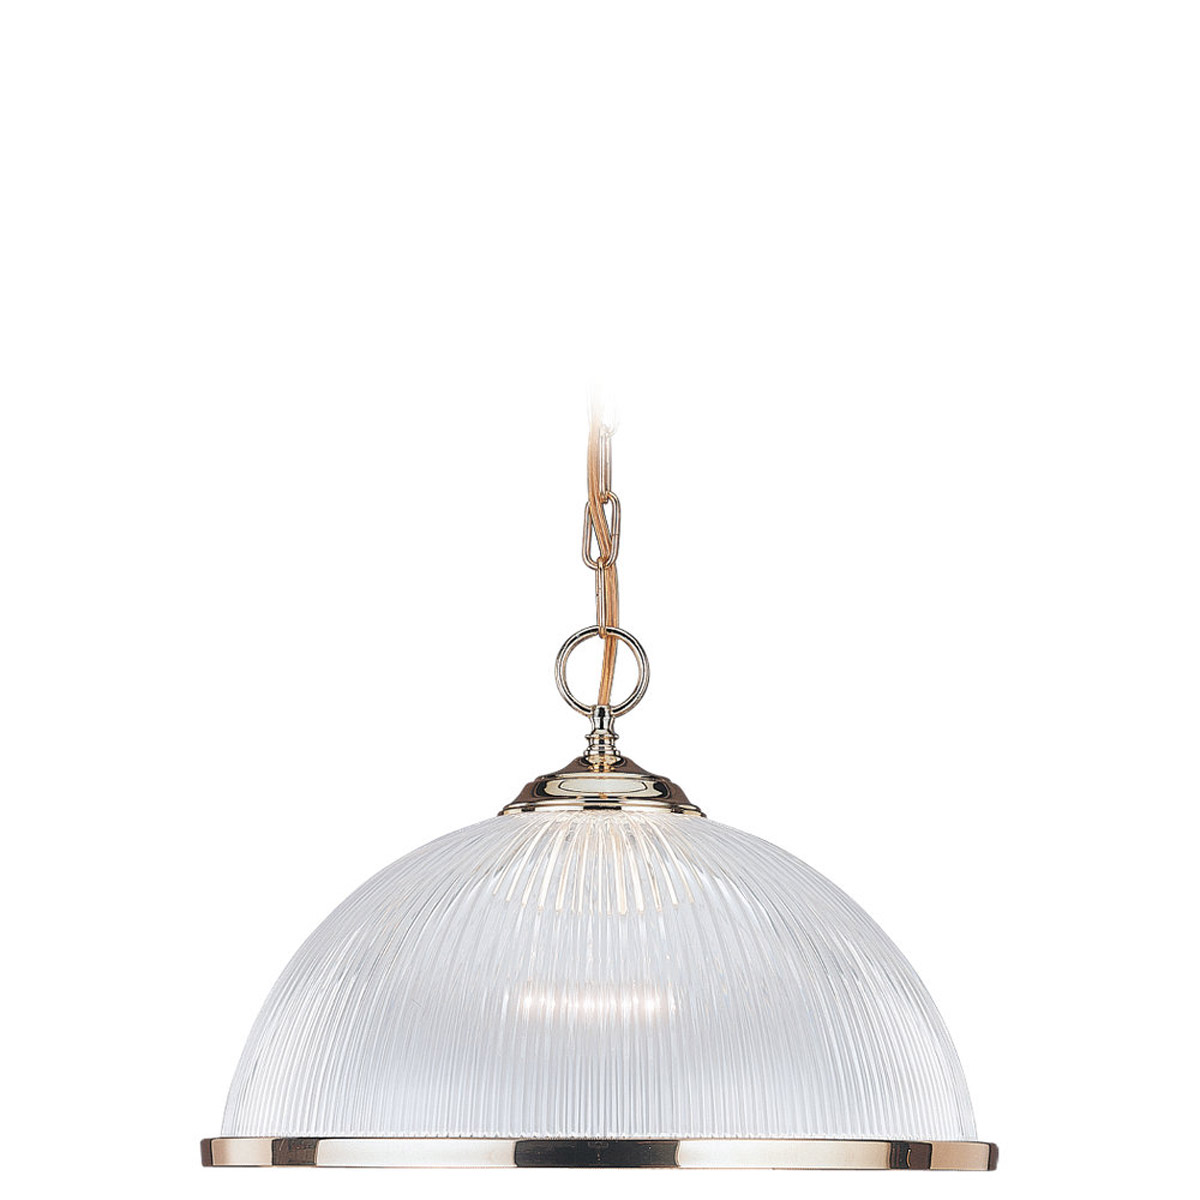 Sea Gull Lighting Signature 1 Light Pendant in Polished Brass 6641-02 photo